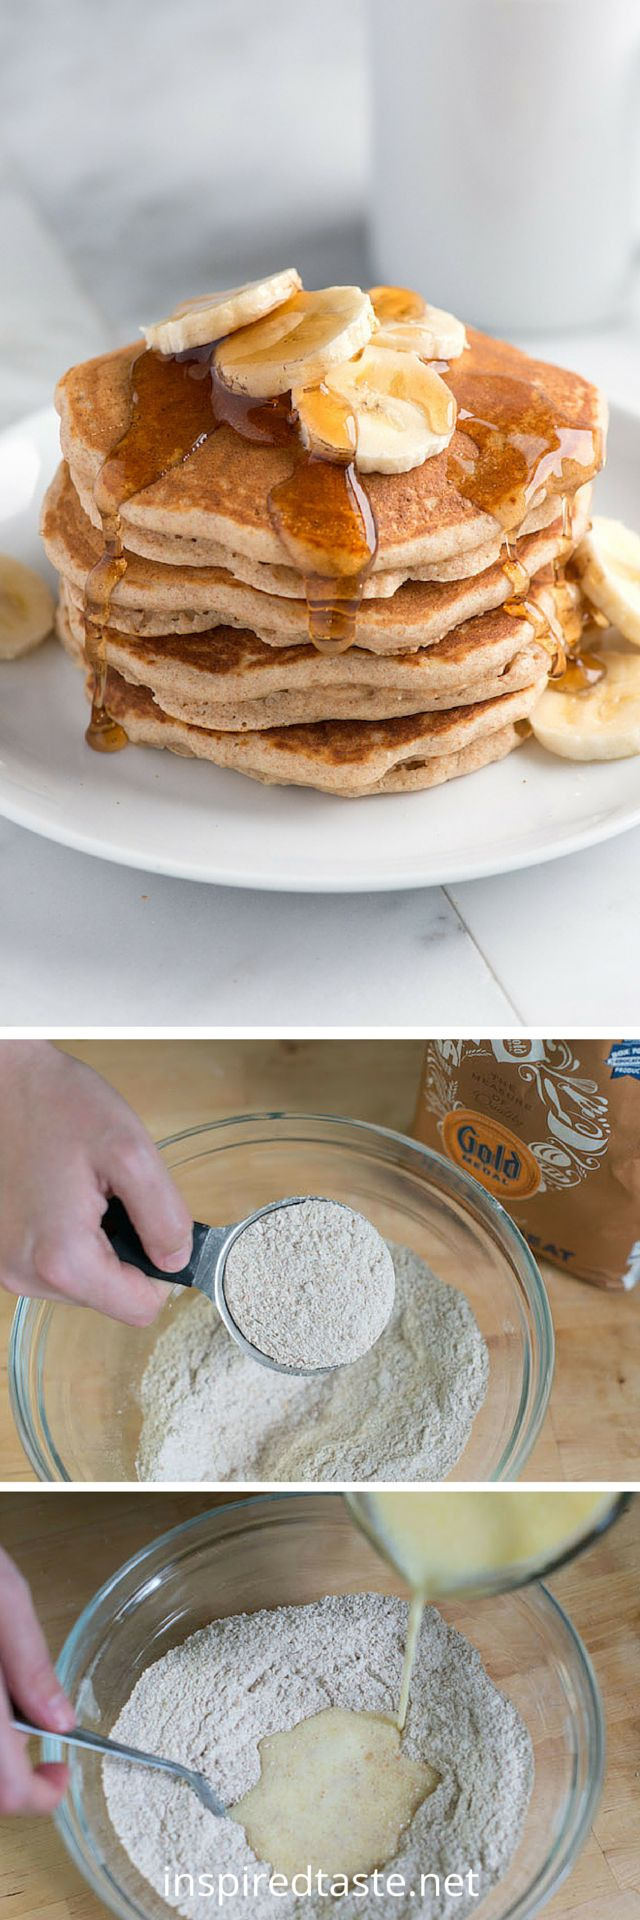 These whole wheat pancakes are light, fluffy and delicious! See the full recipe and video on inspiredtaste.net